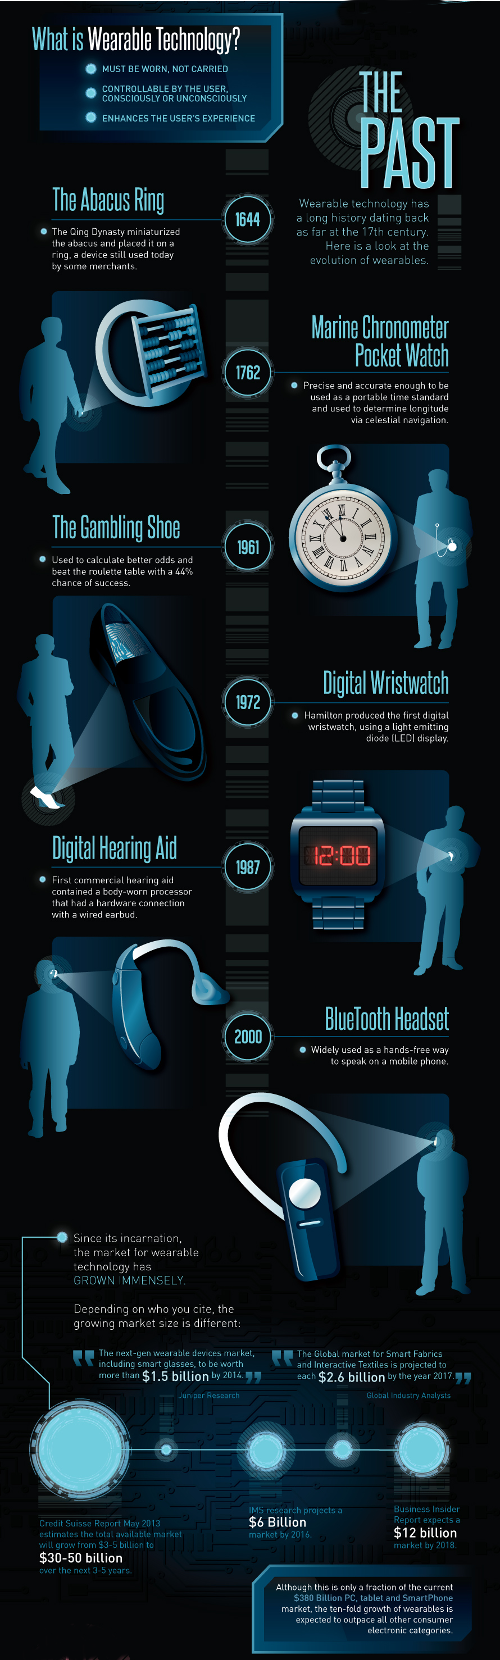 wearable.technology.1.past